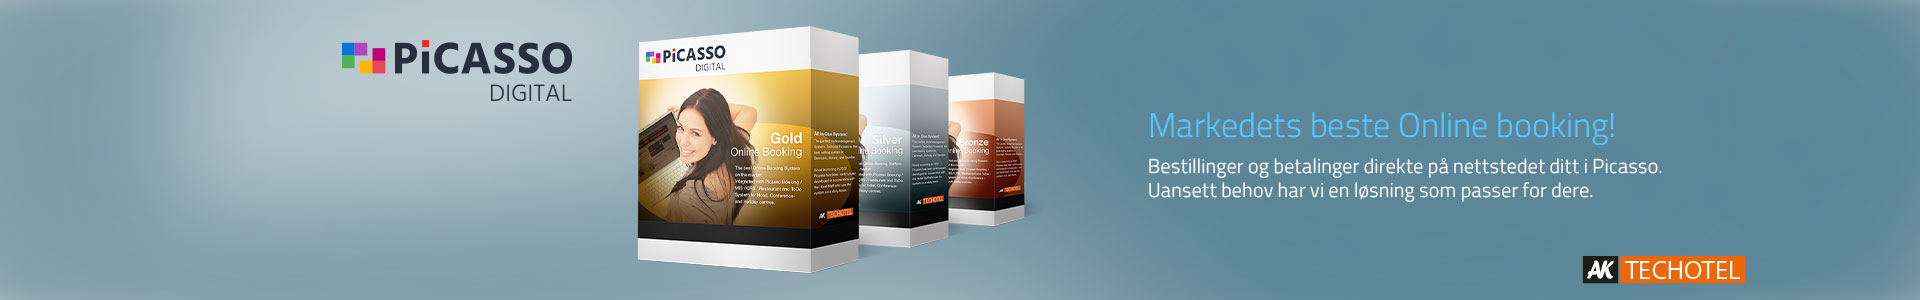 Products-banner-no-1920x300px-09new